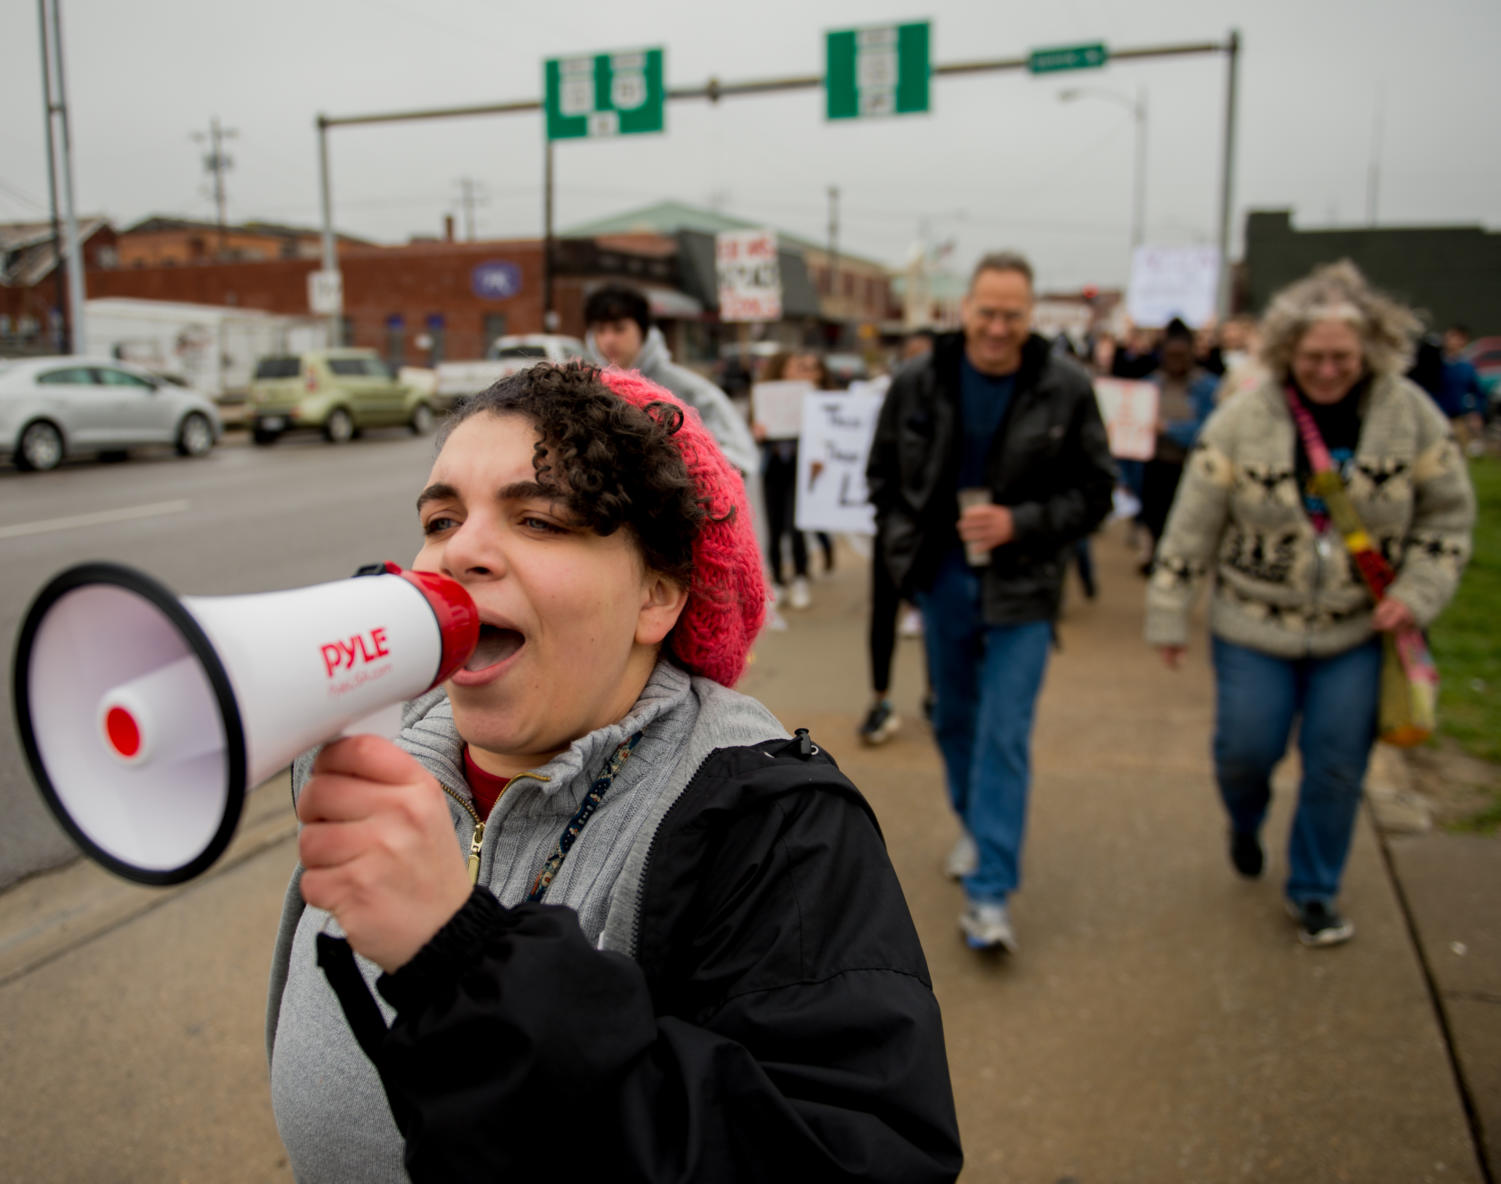 Alexis+Jones%2C+a+Carbondale+Community+High+School+student+and+event+organizer%2C+chants+while+marching+down+the+strip+Saturday%2C+March+24%2C+2018%2C+during+the+%22March+for+Our+Lives%22+demonstration+in+Carbondale.++%28Brian+Munoz+%7C+%40BrianMMunoz%29